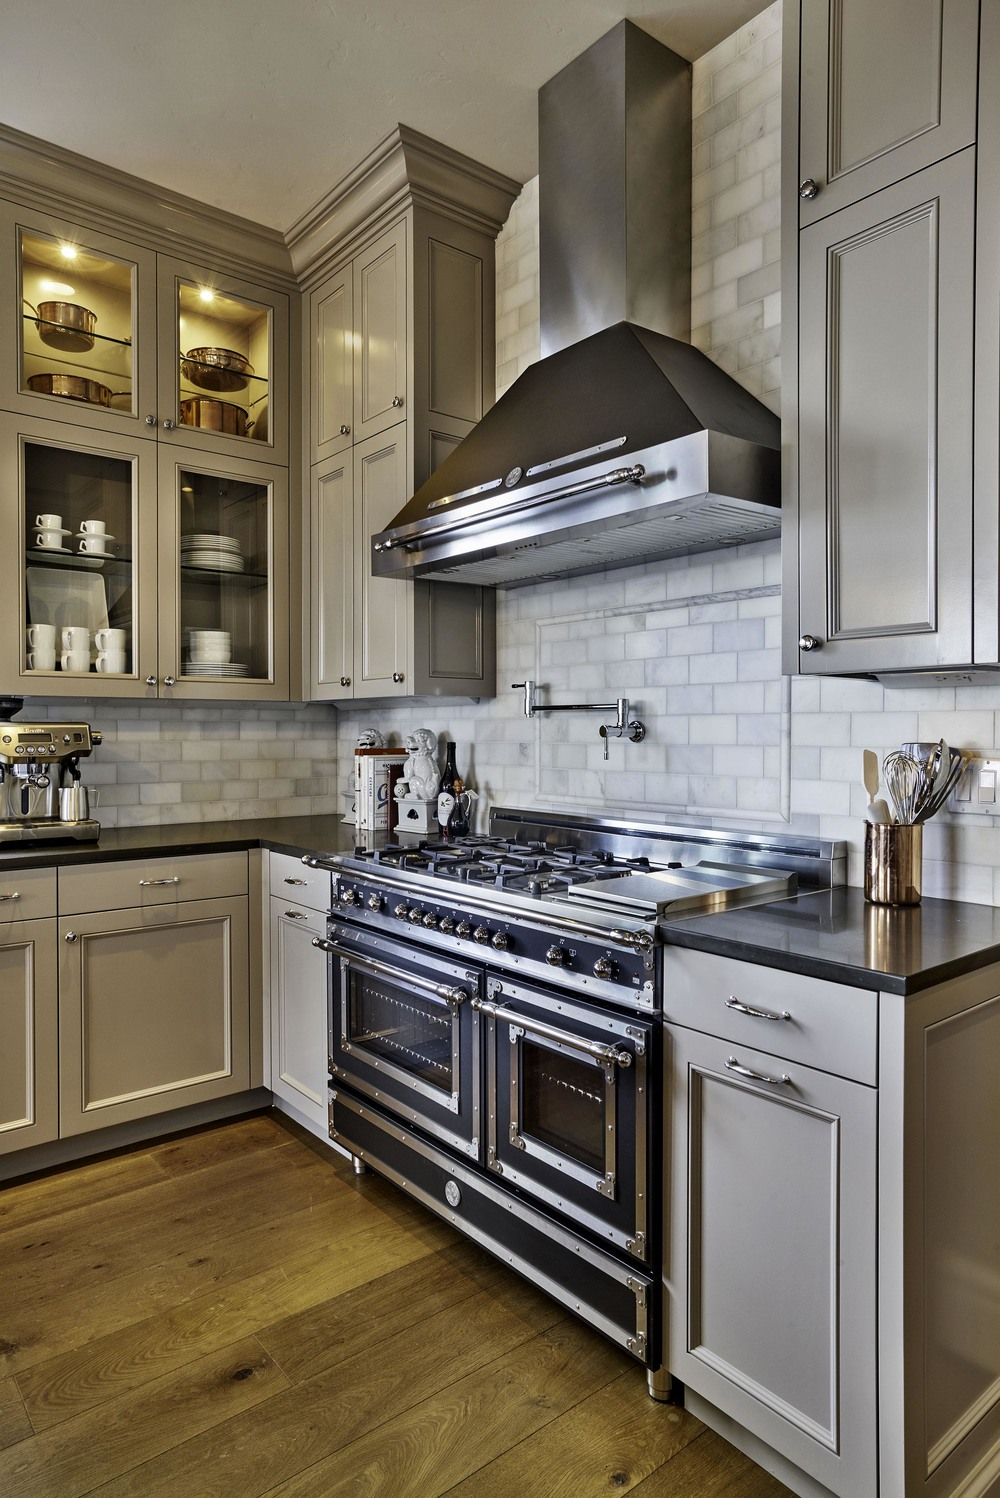 The Adeline Kitchen Backsplash